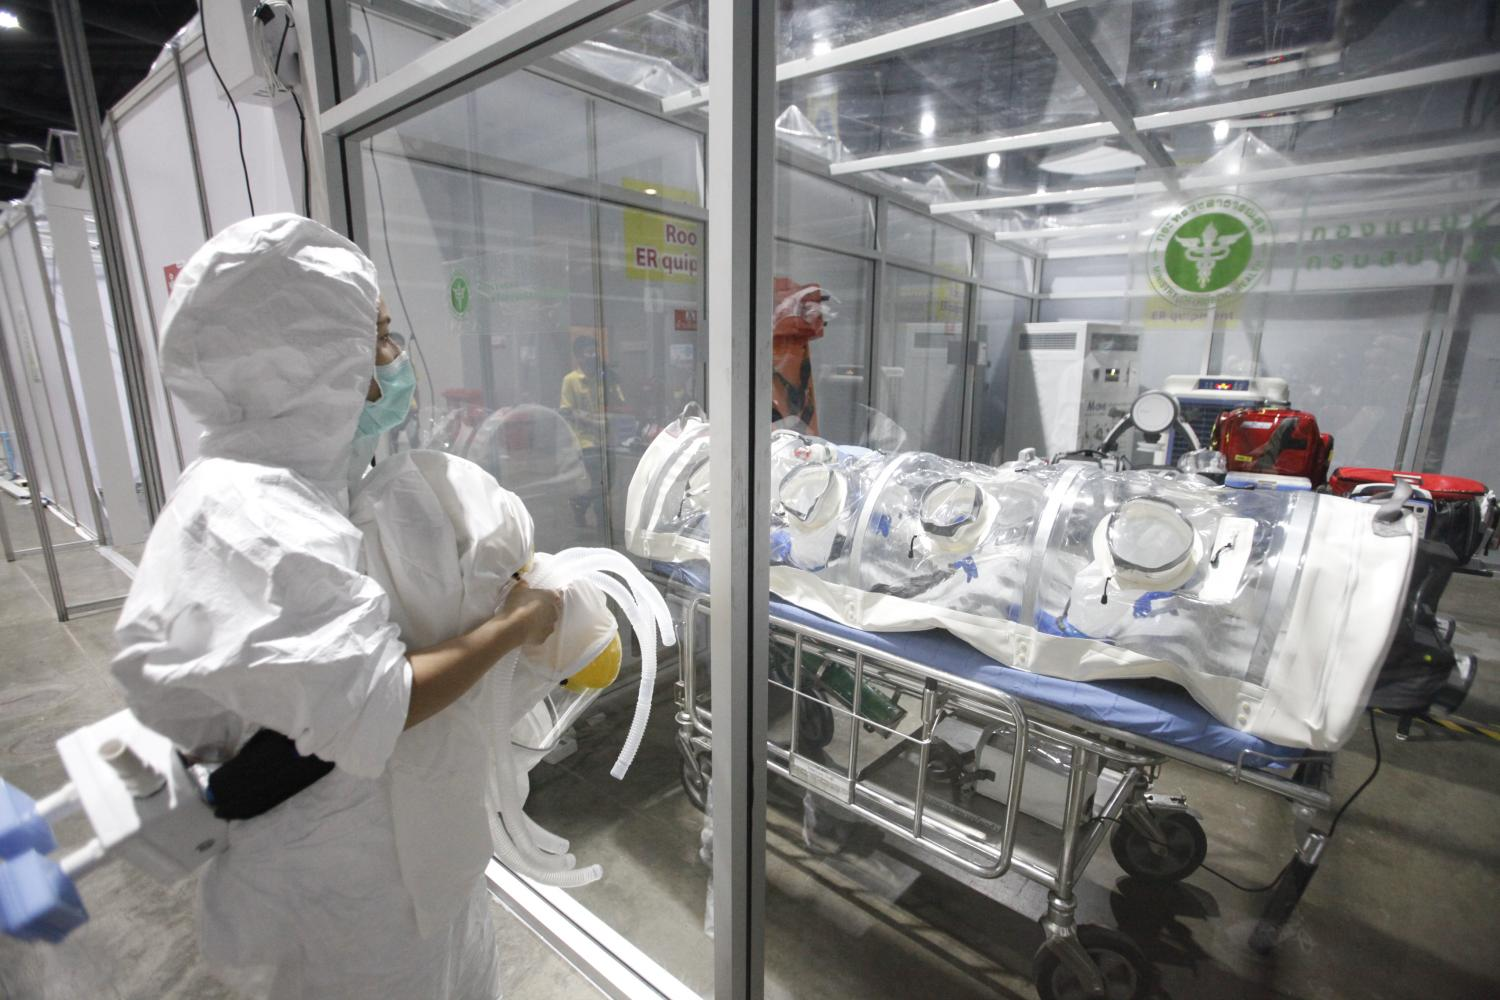 Record-smashing 9,635 new Covid cases Monday, 25 deaths